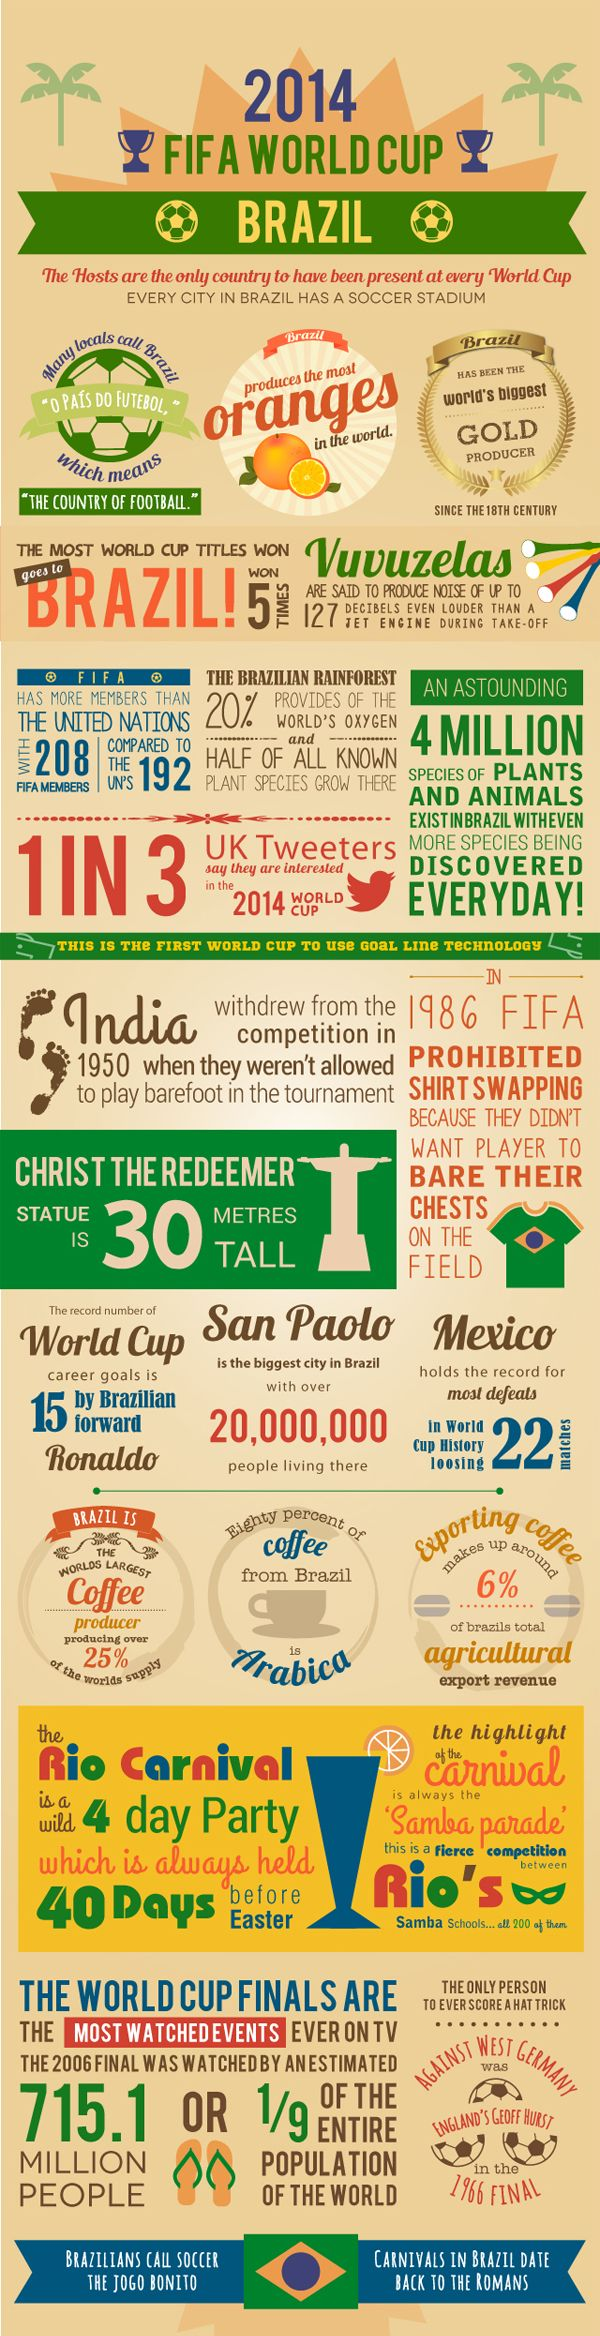 Cool facts about Brazil and the World Cup!   ~B€LMÅ~